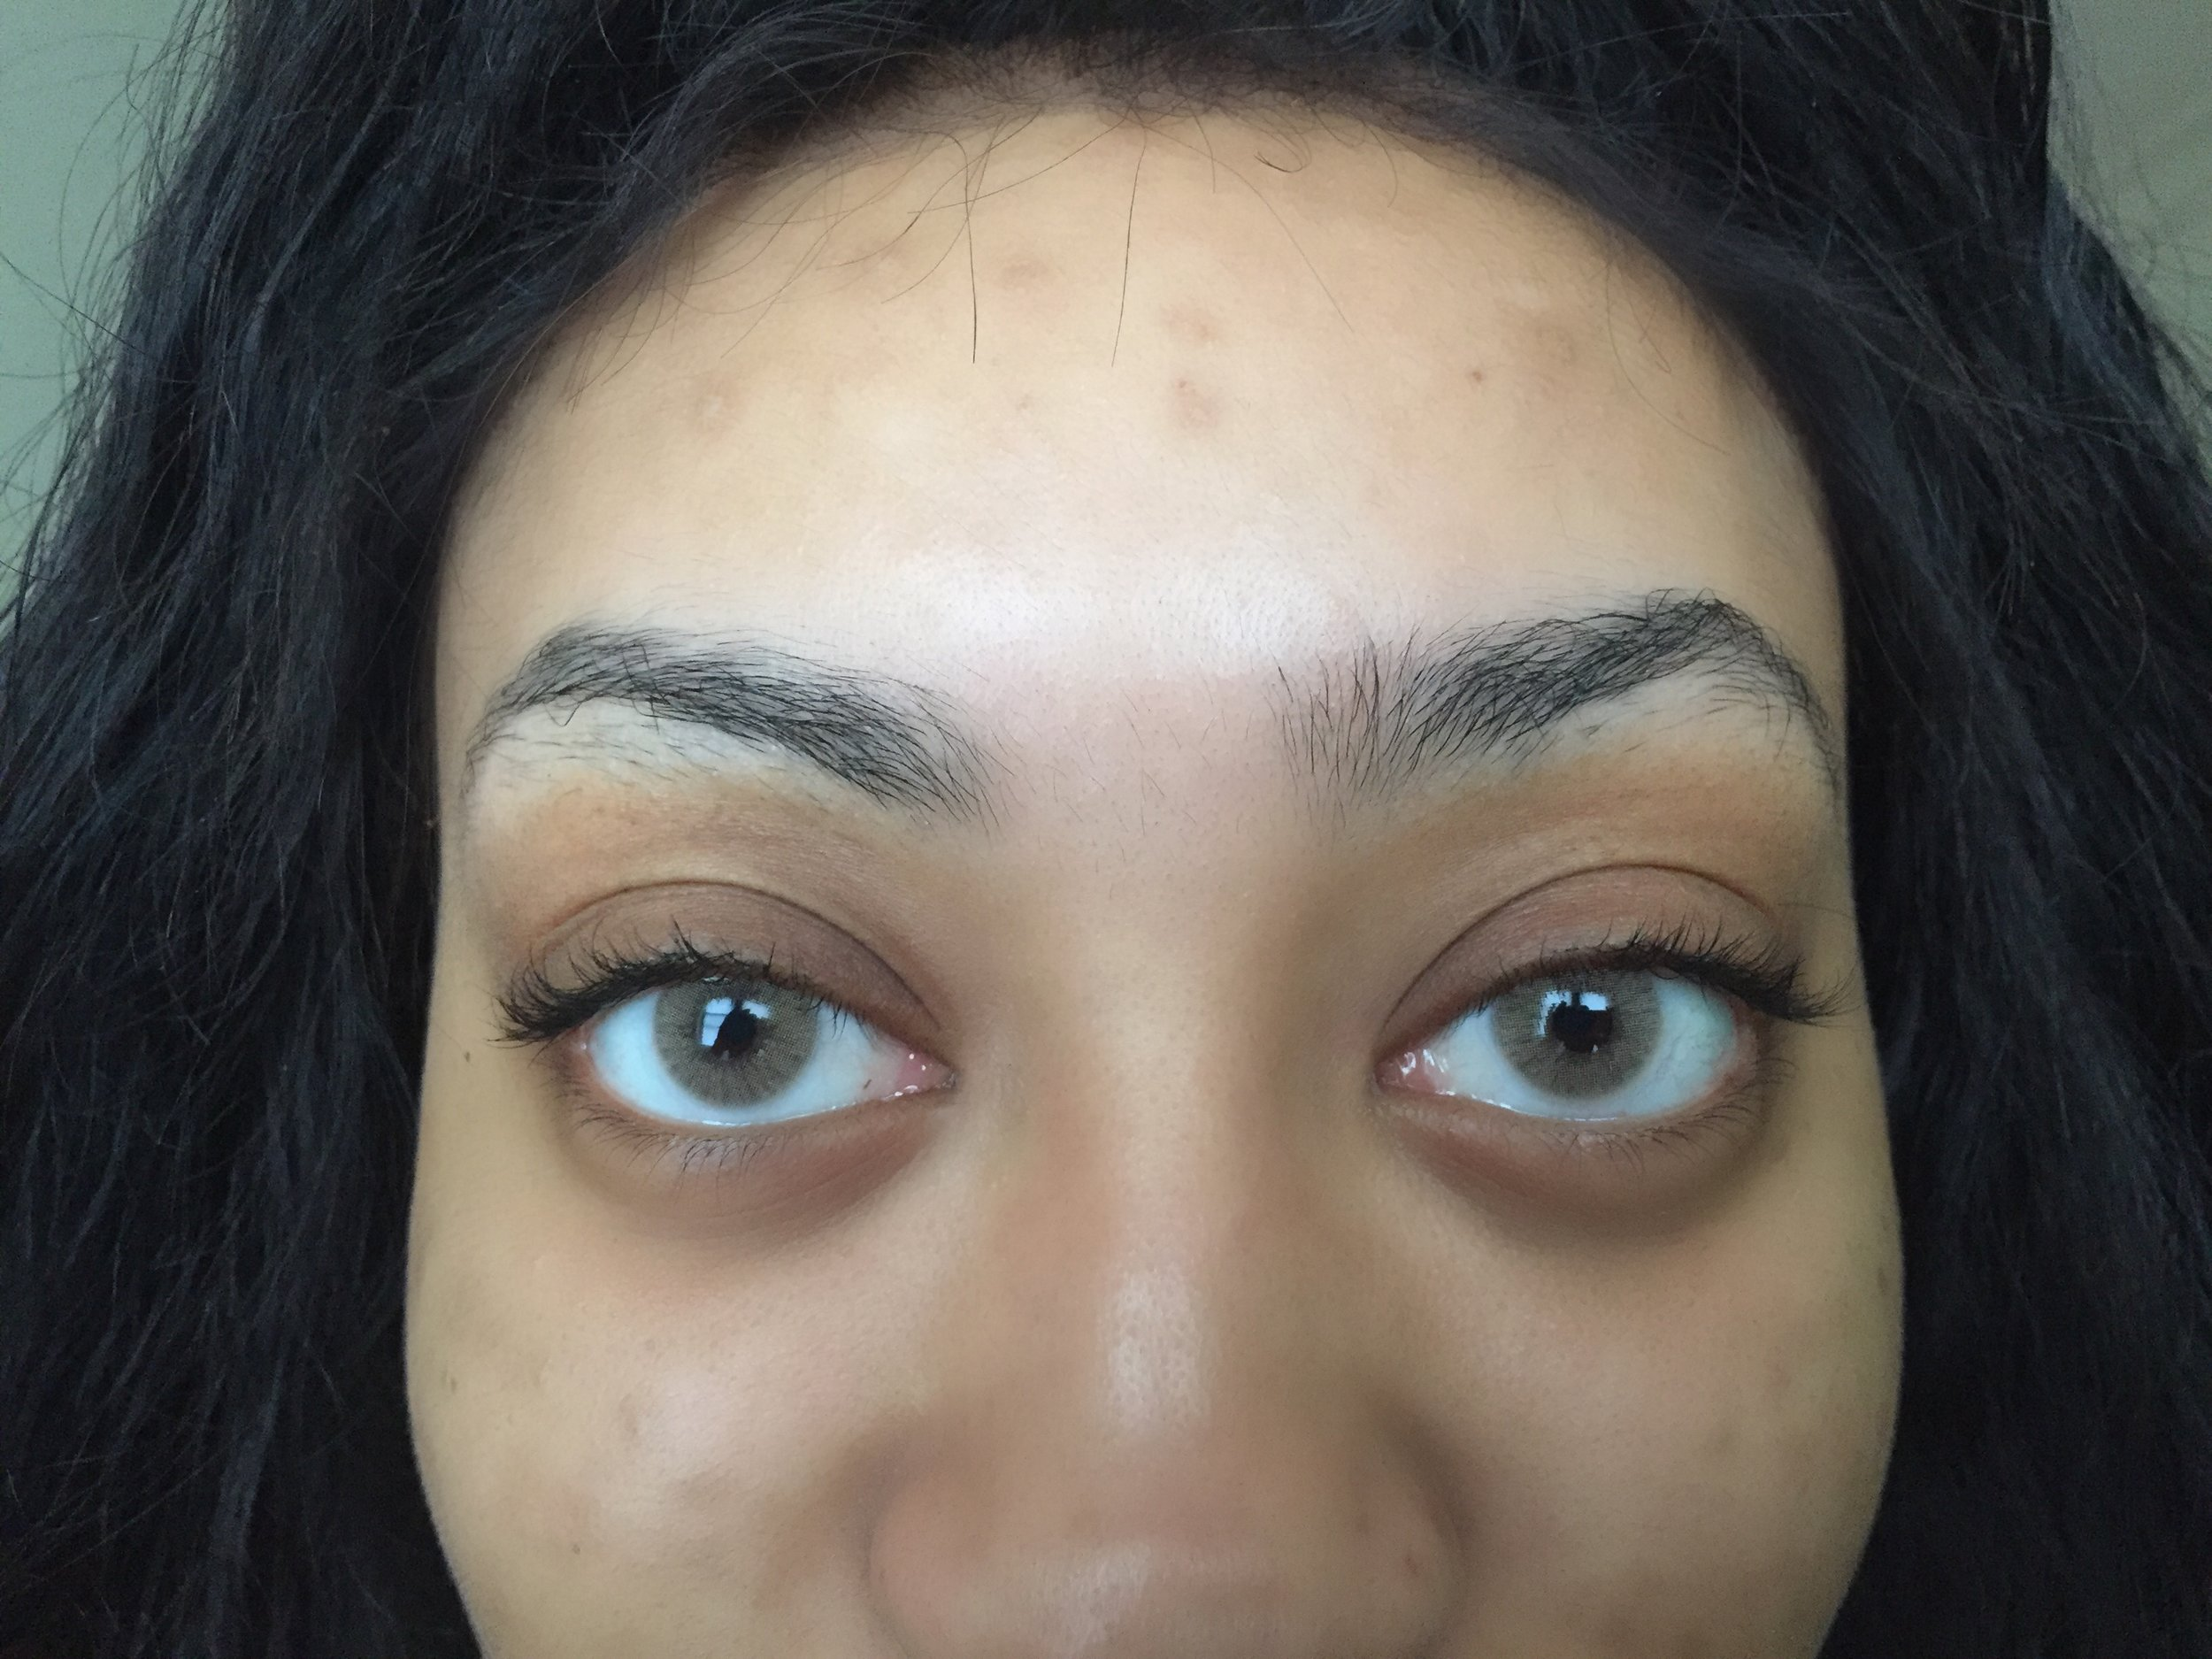 Before - Day before Microblading Procedure!